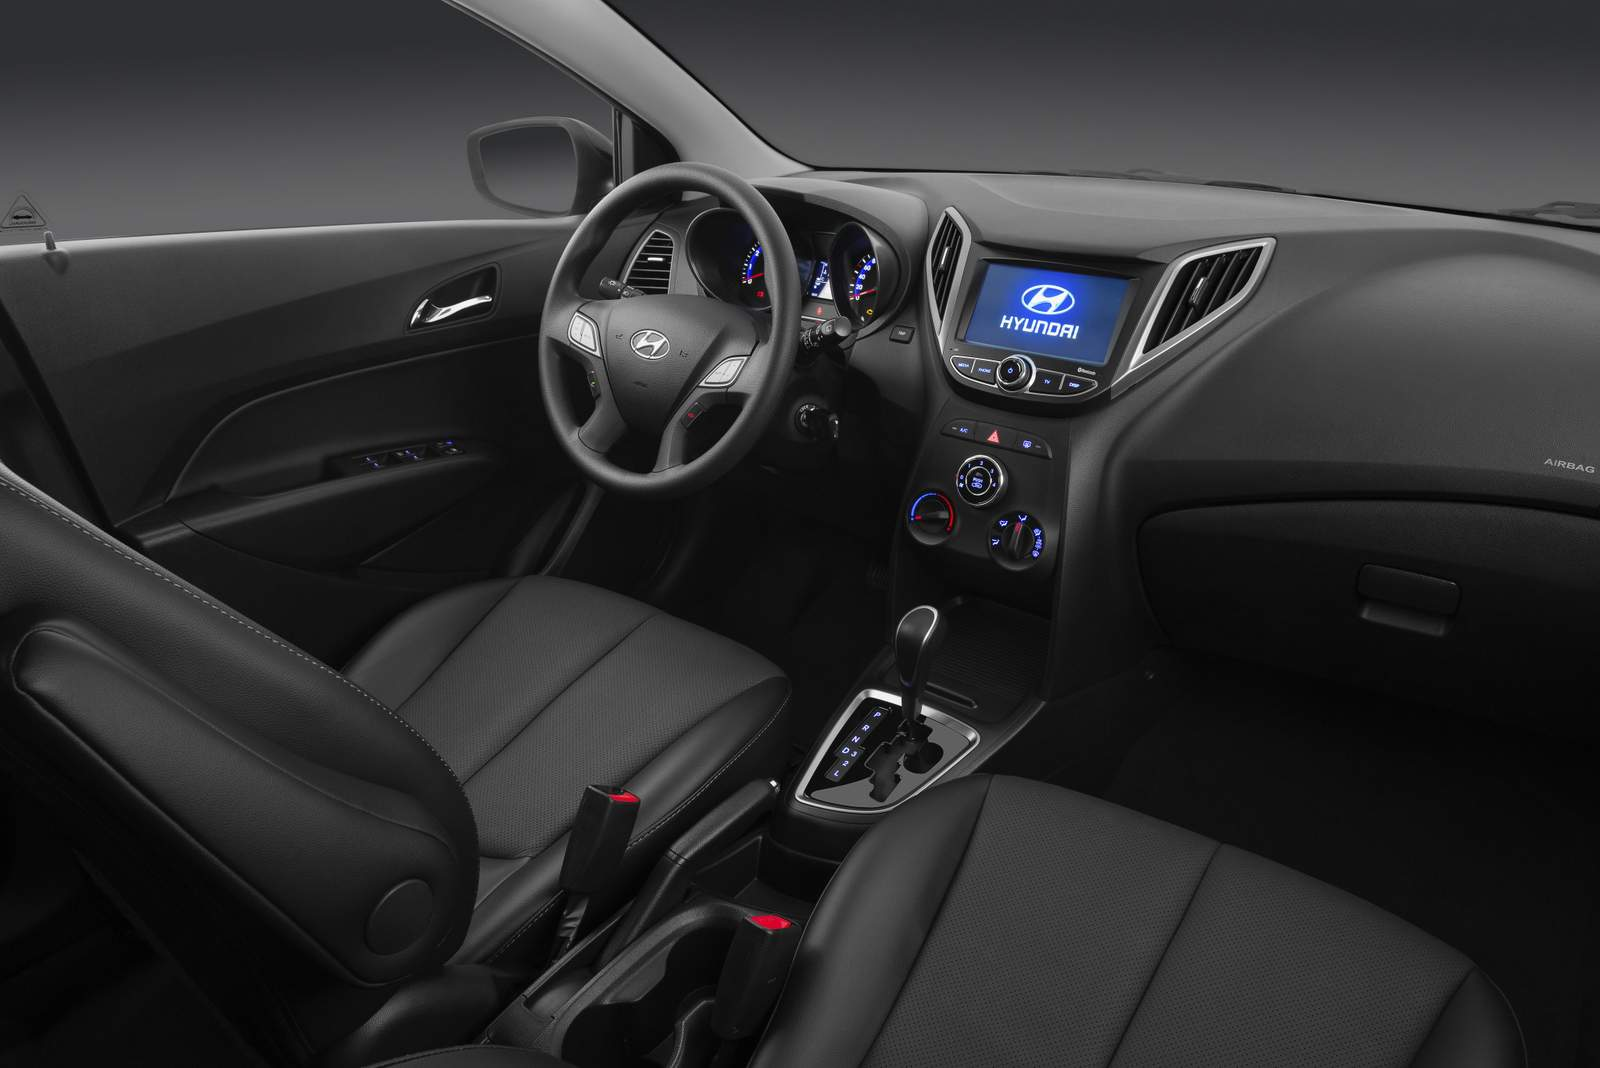 Hyundai HB20 2015 Spicy - interior